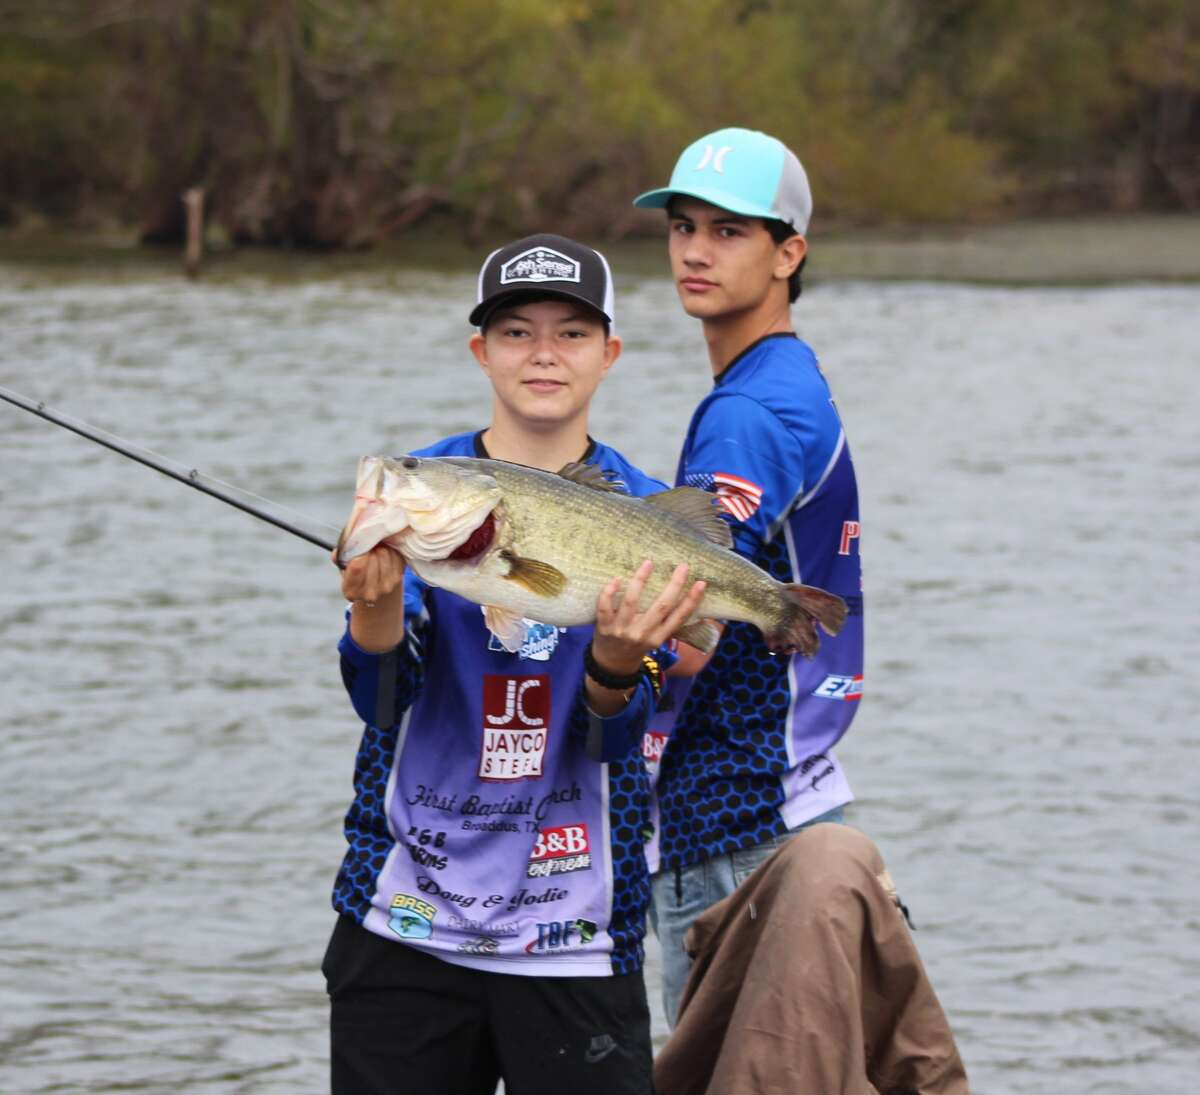 DETX opened the 2017 high school fishing season with Broaddus High School taking the top honors.